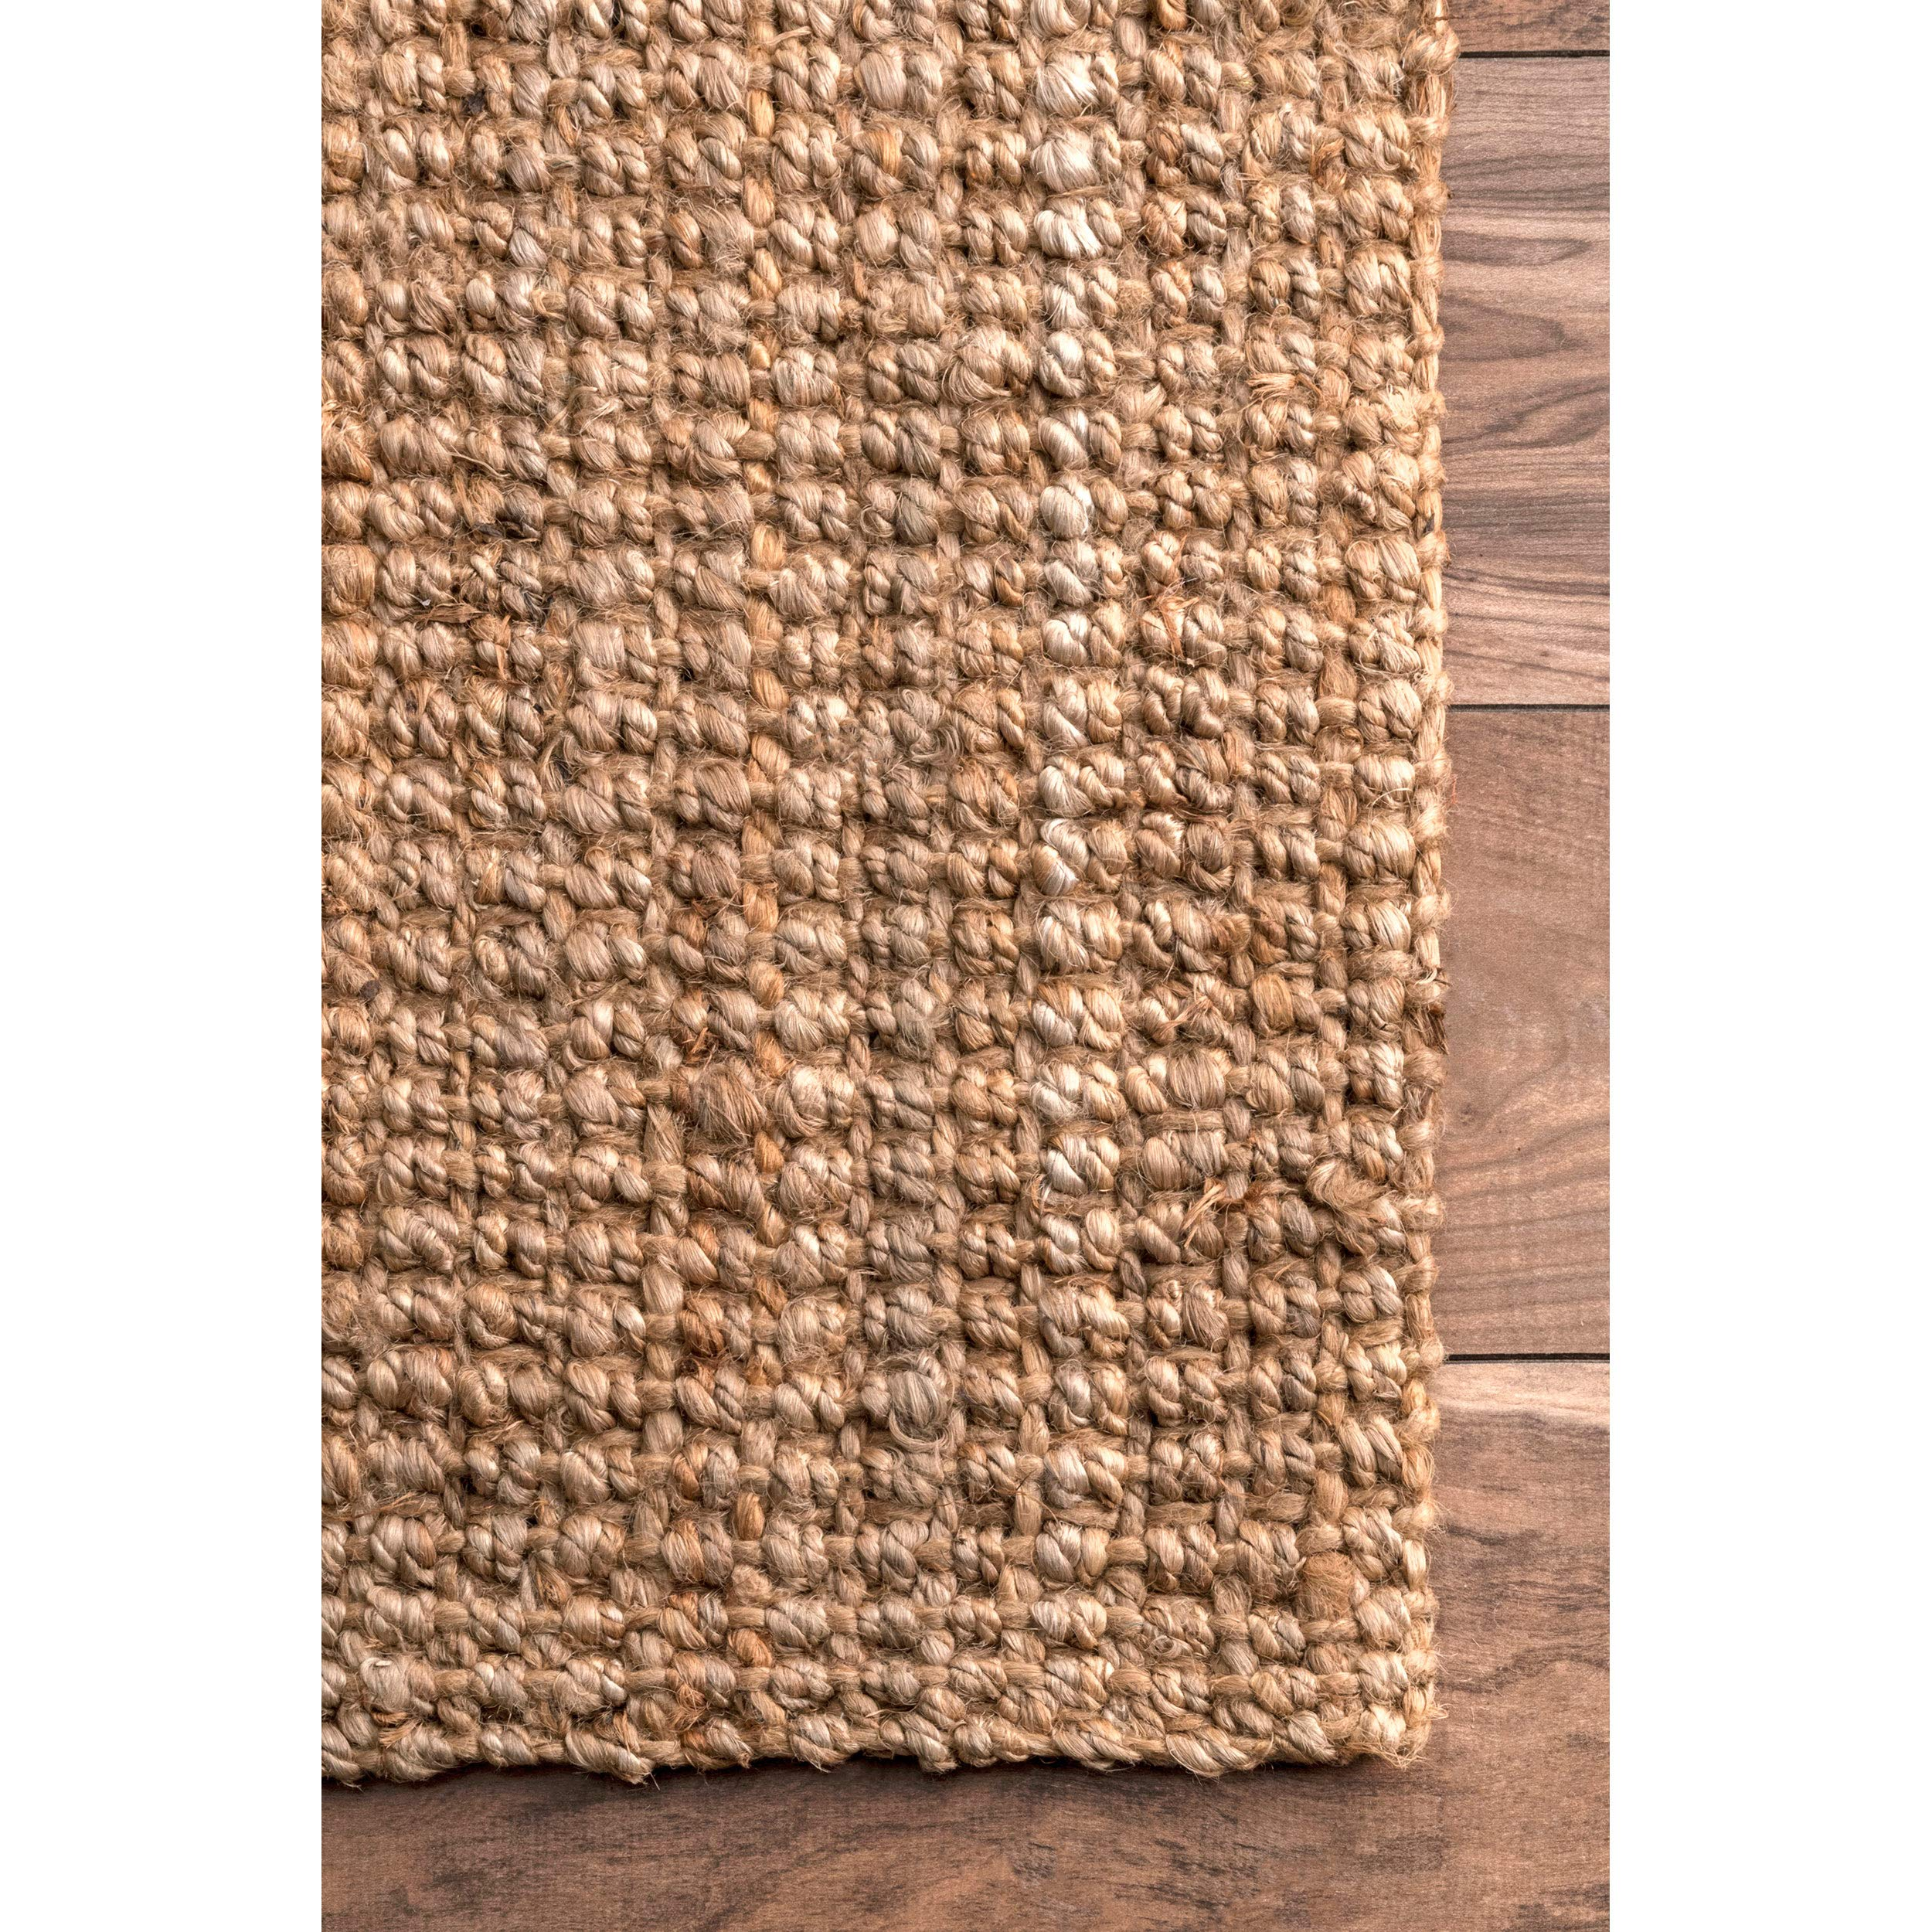 nuLOOM Handwoven Jute Ribbed Solid Area Rugs, 4' x 6', Natural by nuLOOM (Image #5)